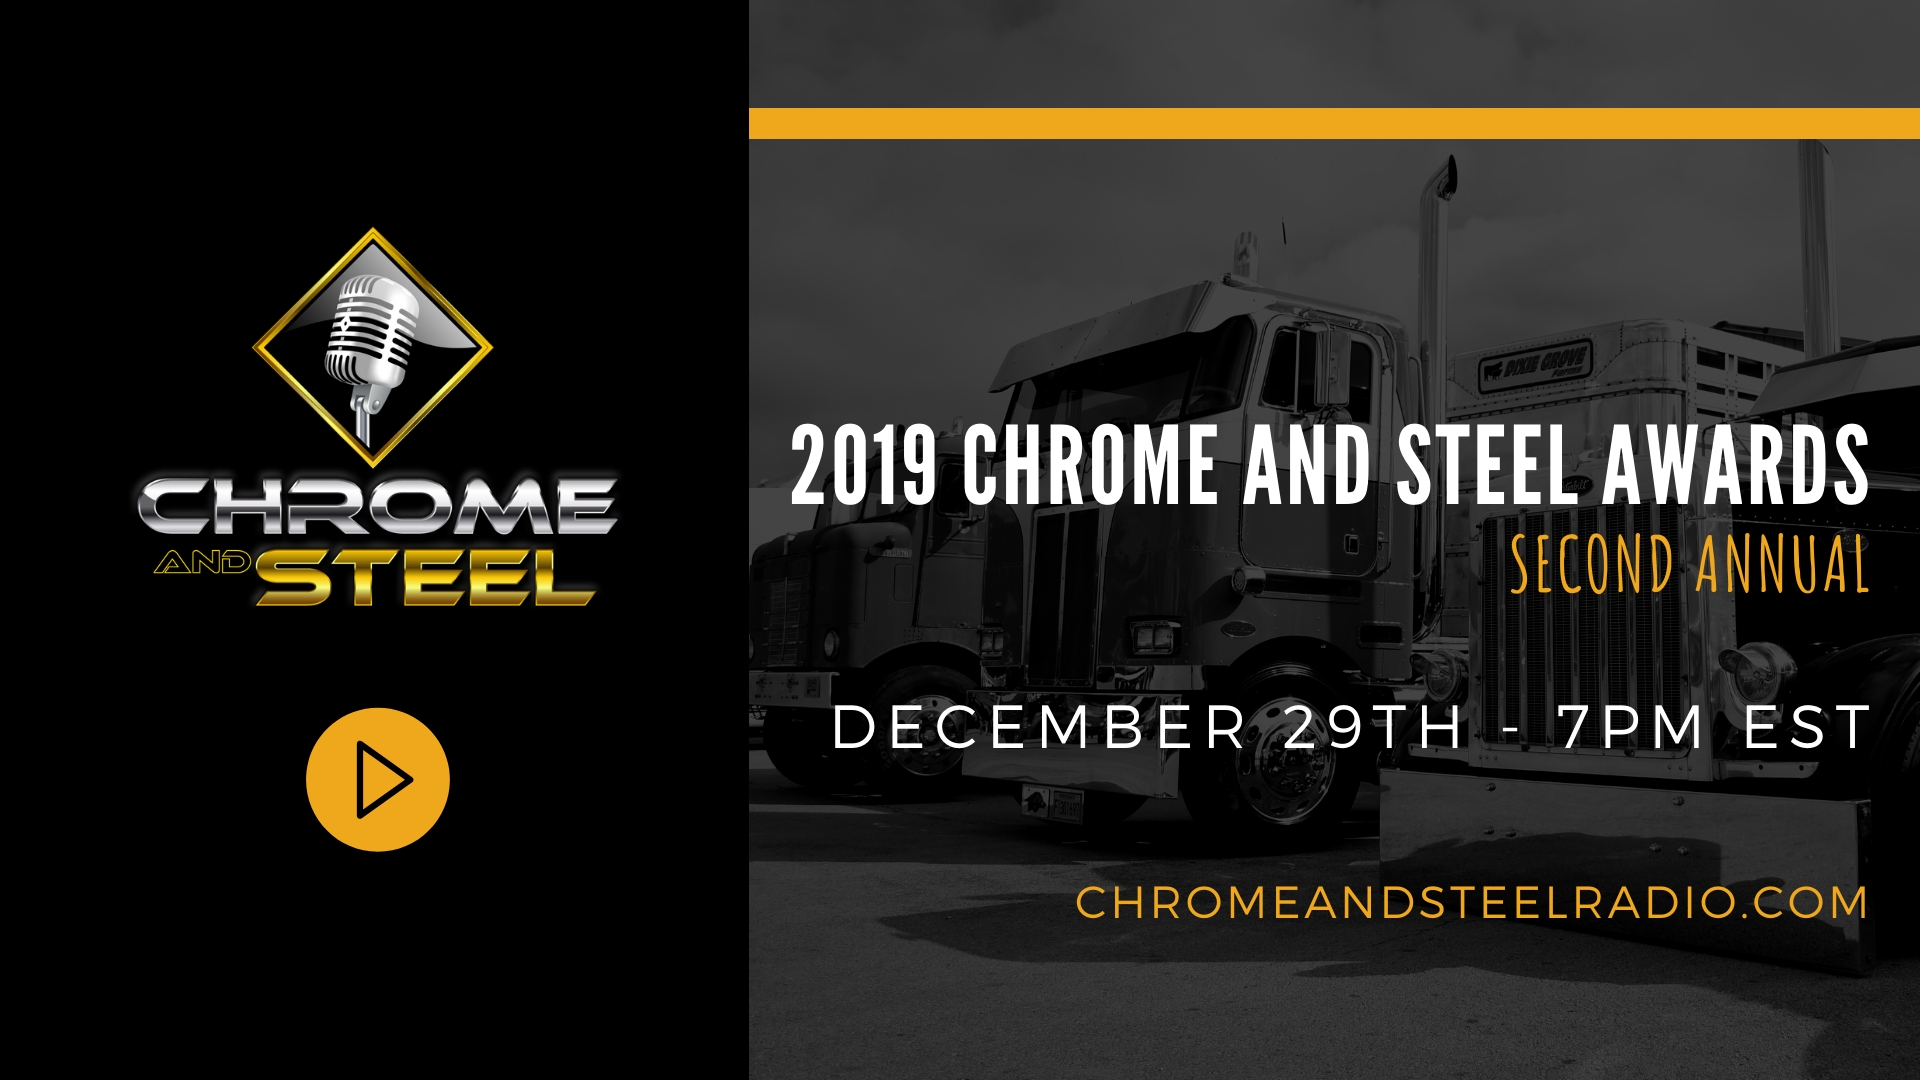 2019 Chrome and Steel Awards